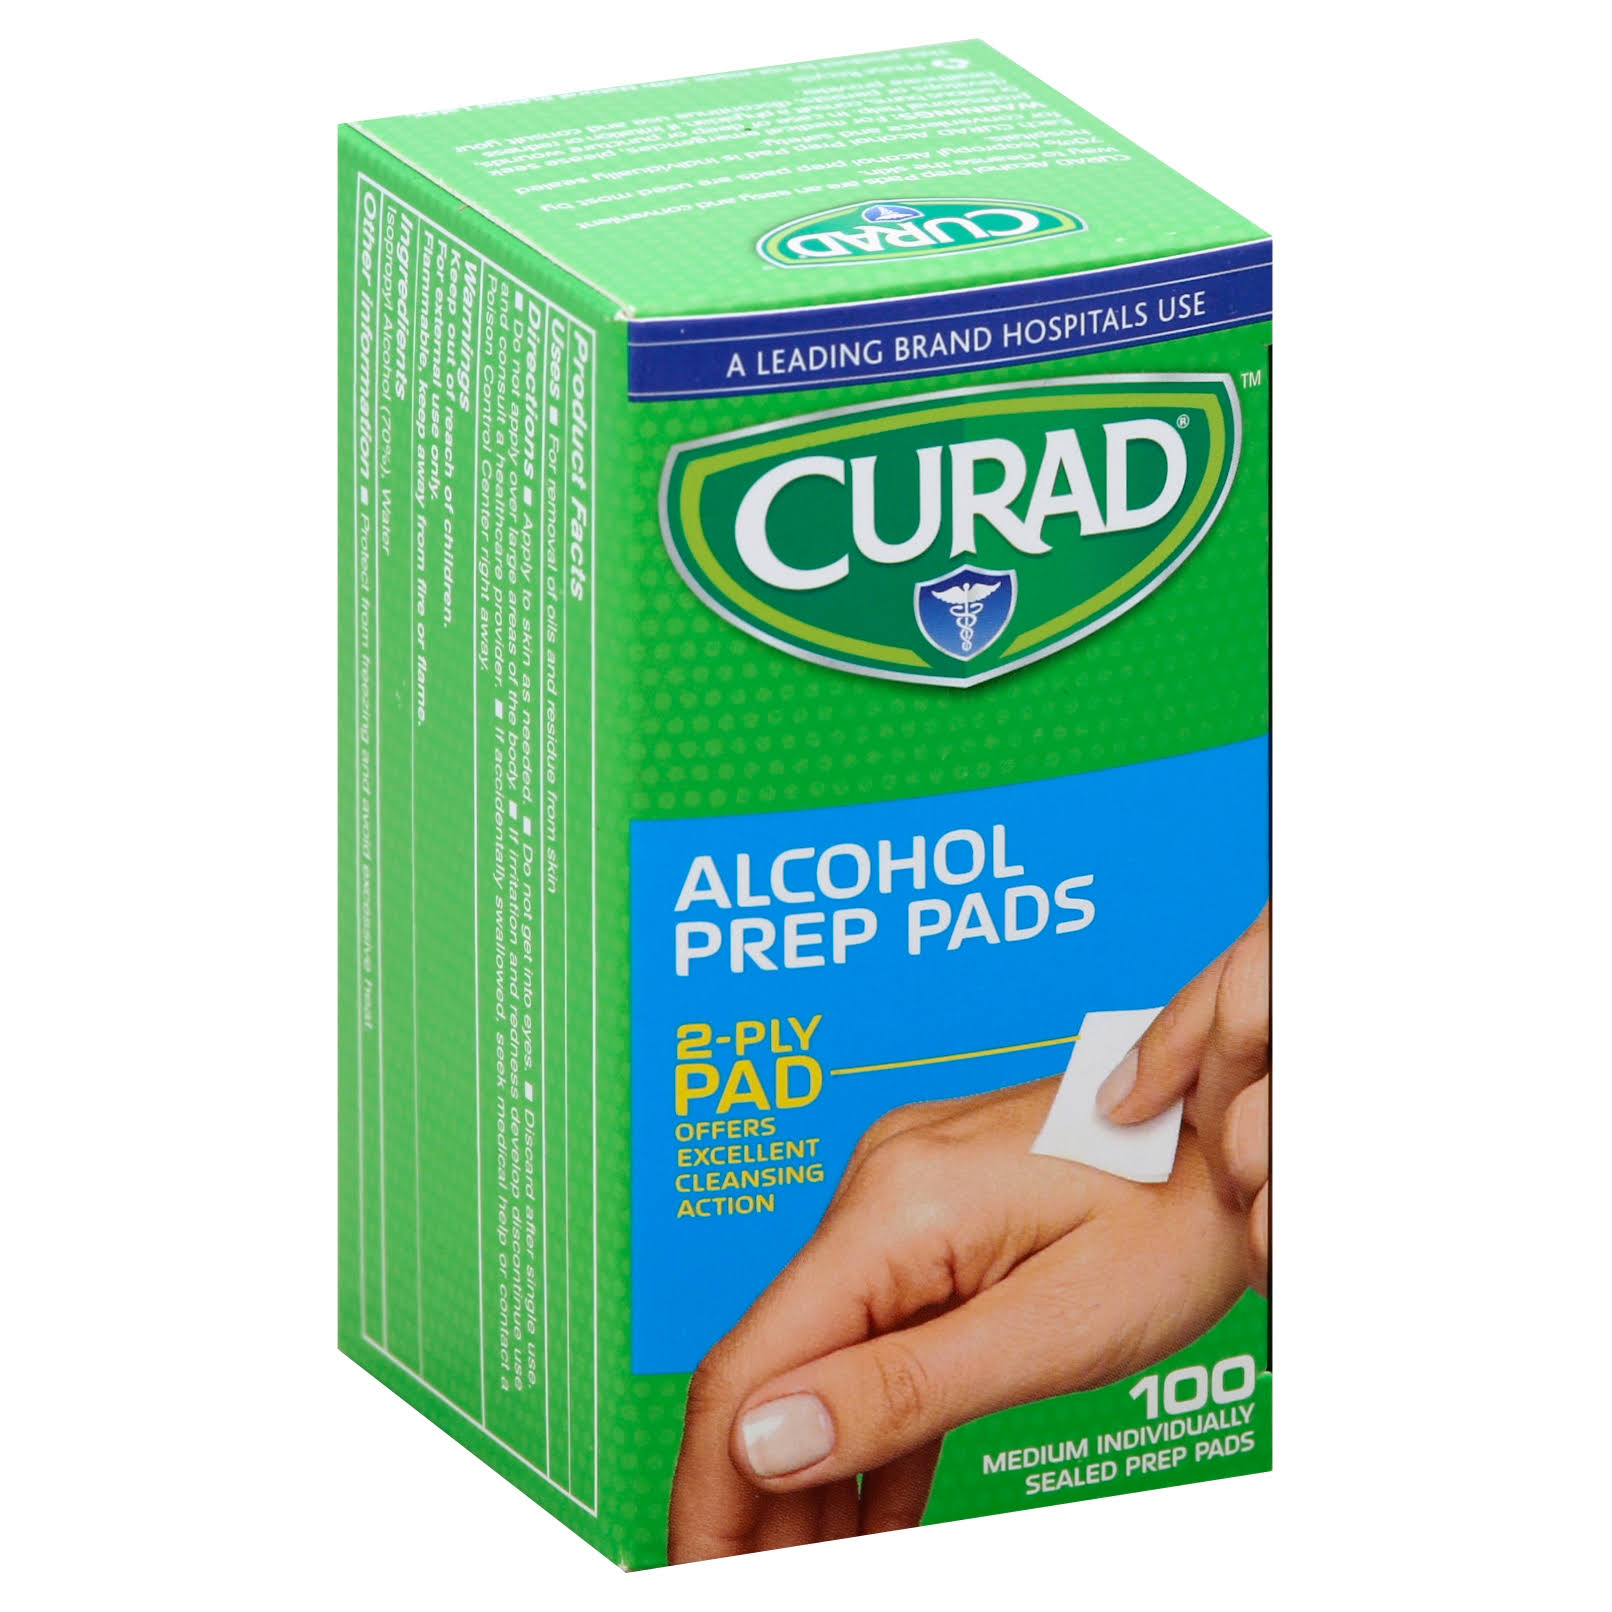 Curad Non Sterile Alcohol Swabs - 100ct, Medium